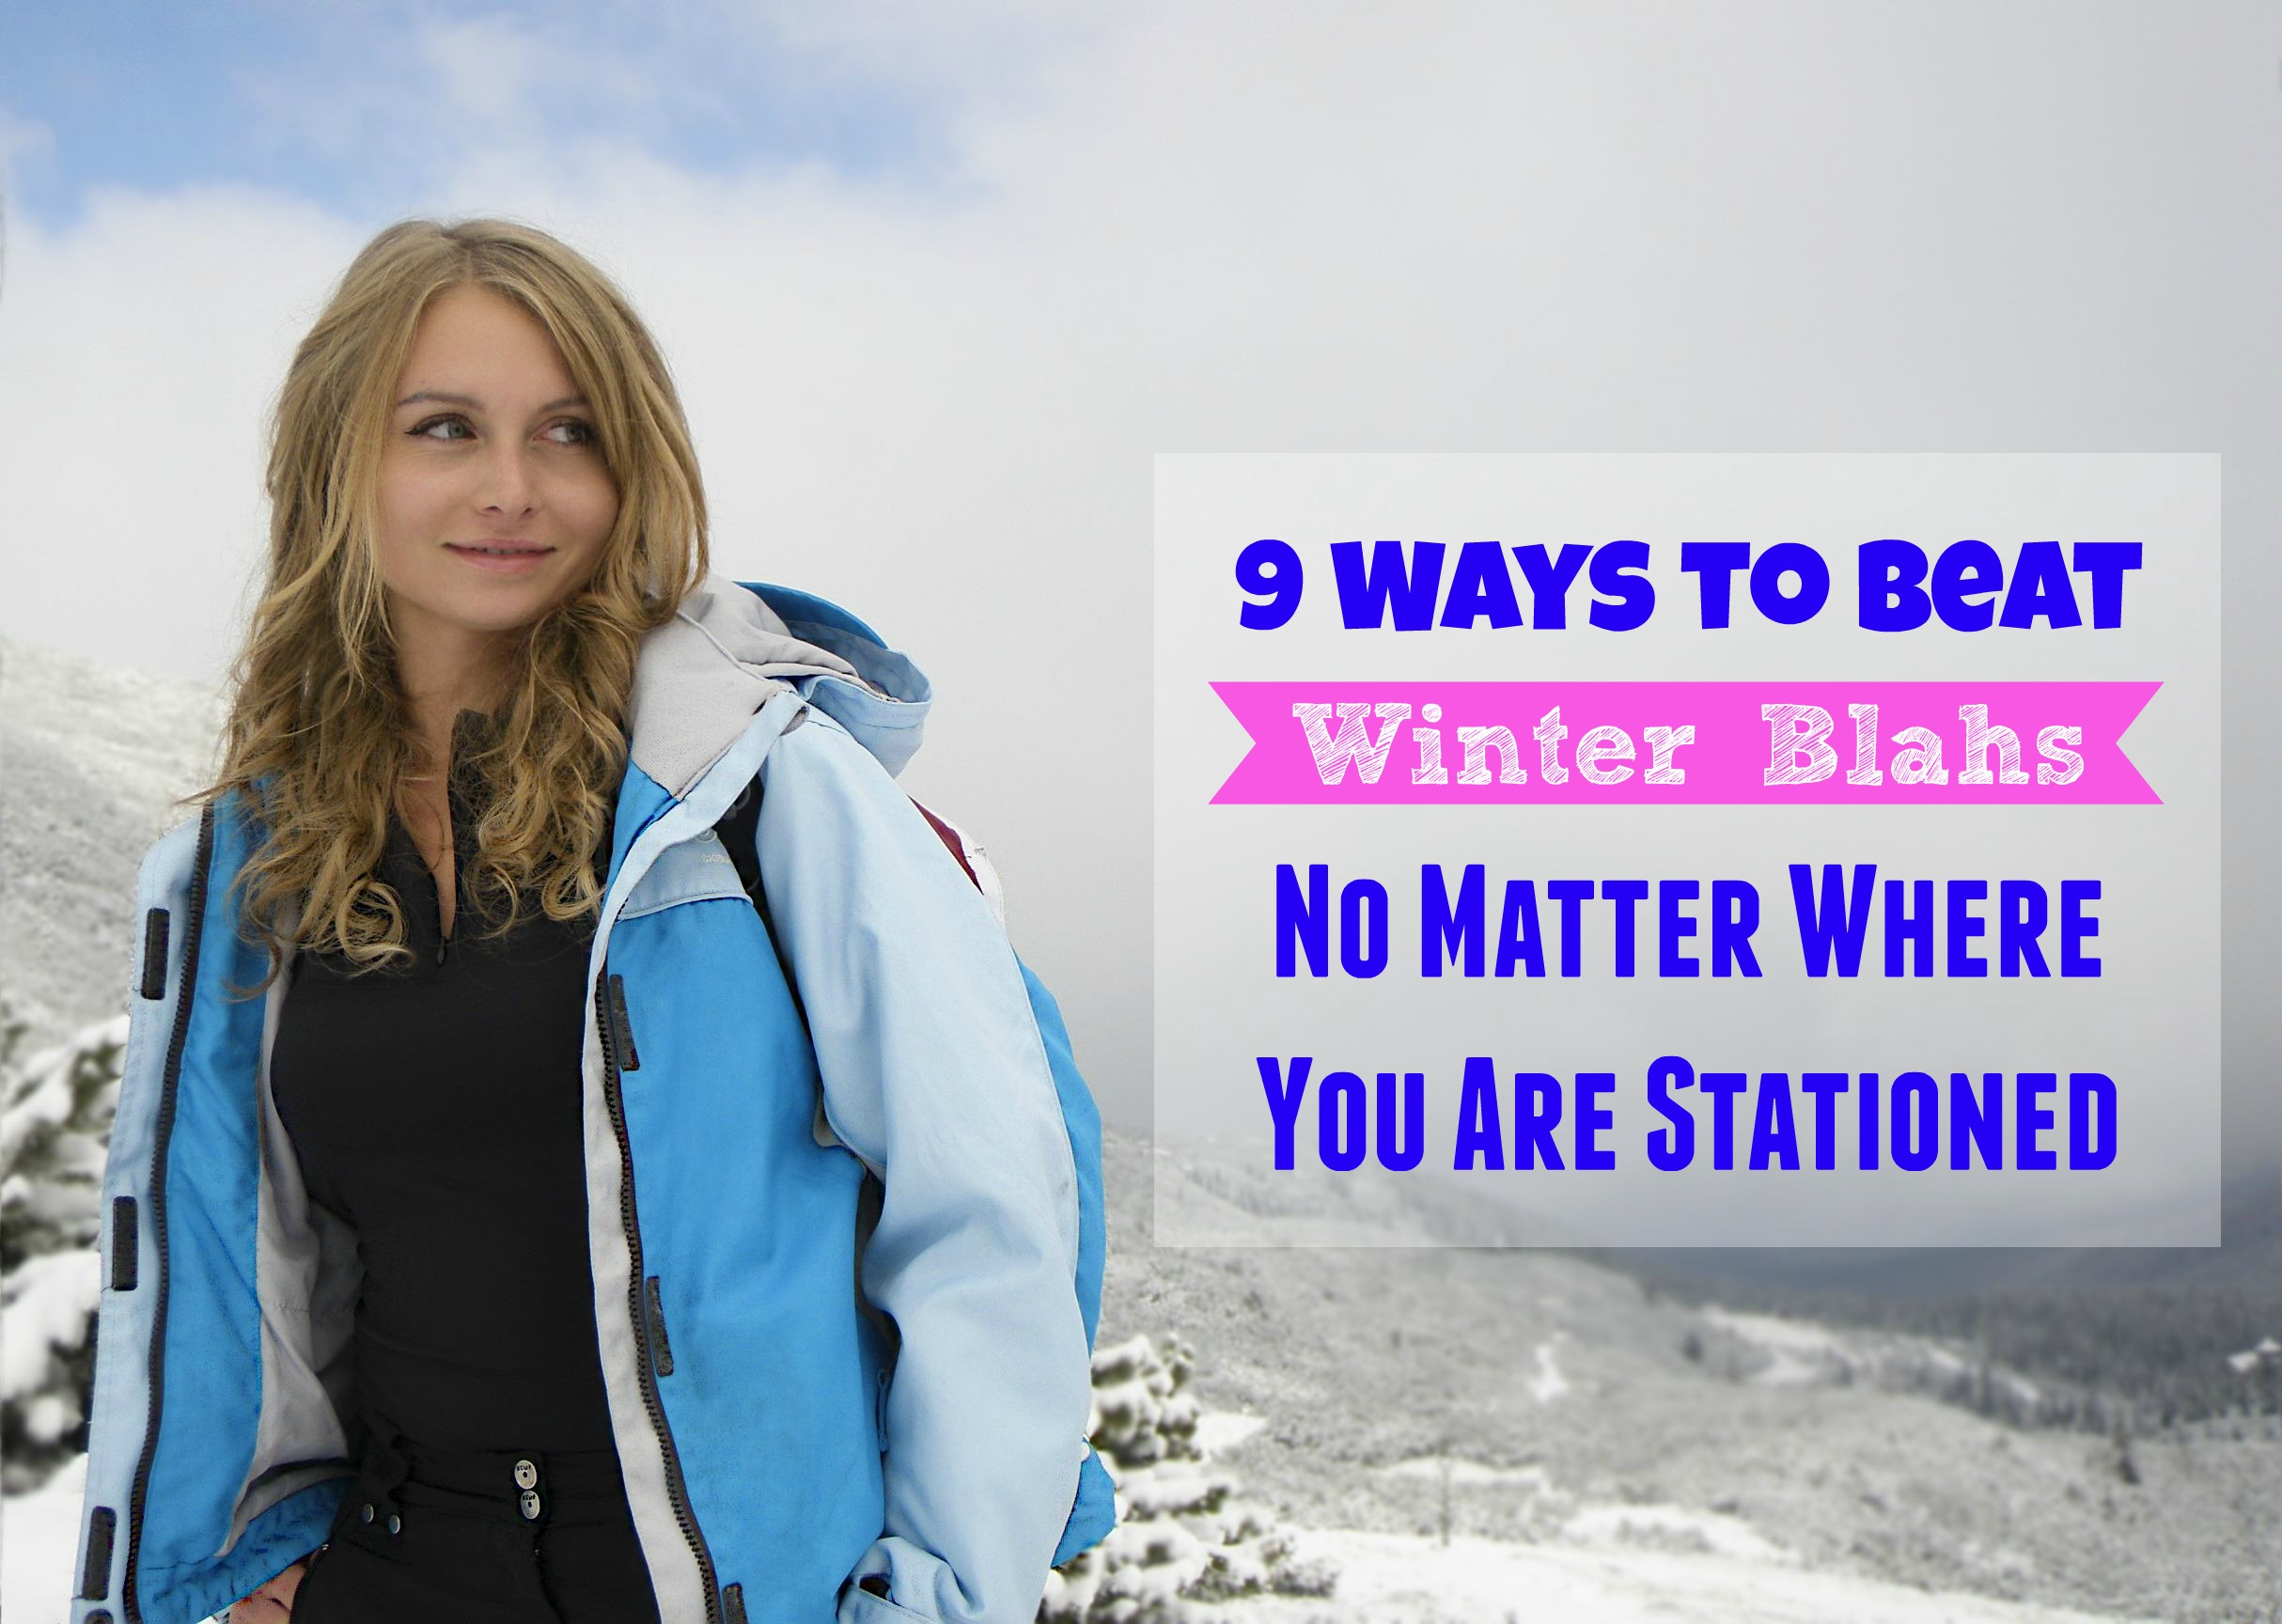 9 Ways to Beat Winter Blahs No Matter Where You Are Stationed